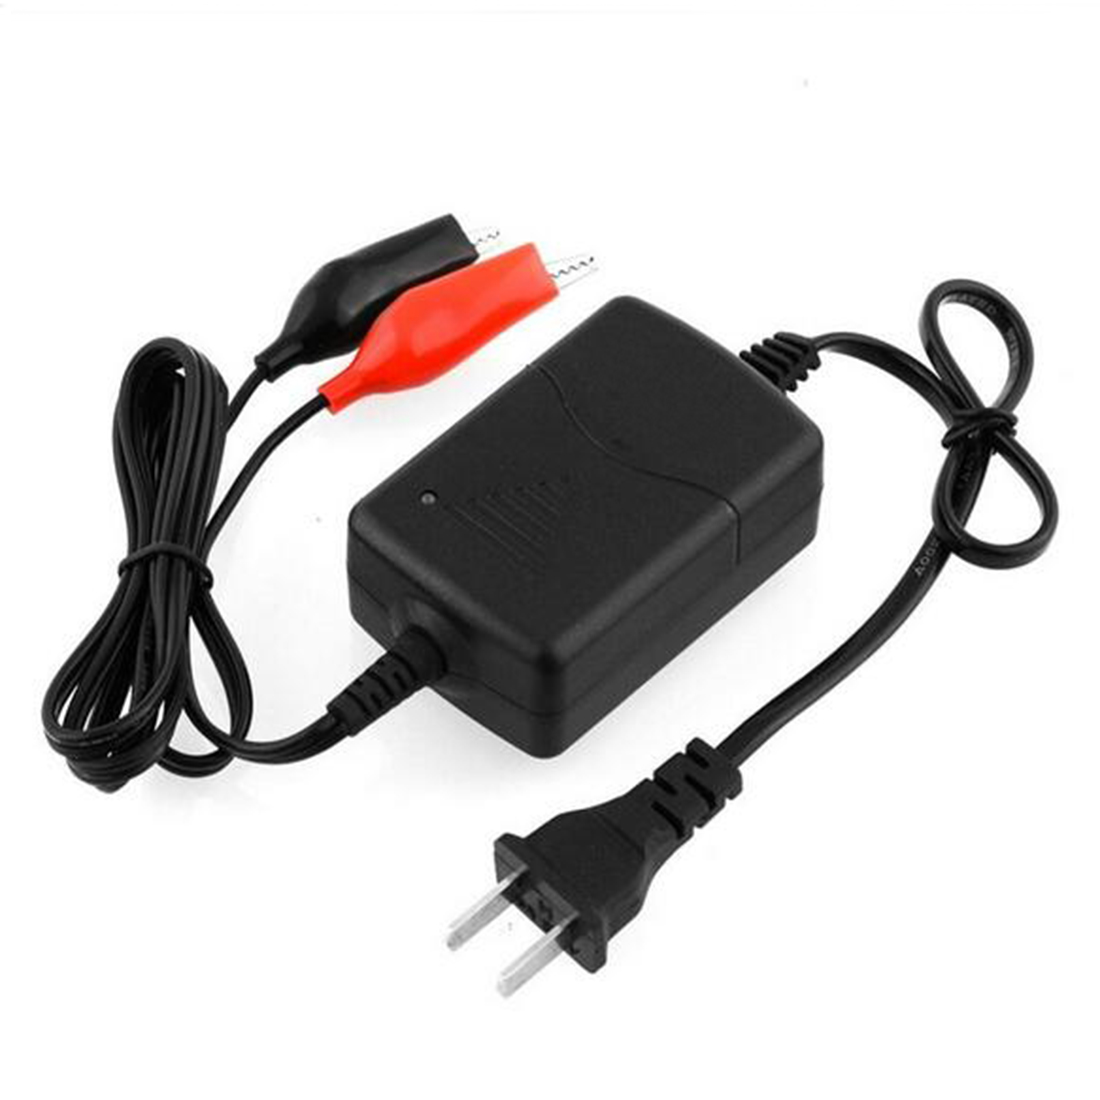 Black Eduton Auto Car Motorcycle ATV DC 12V//1A 15W Smart Fast Universal Portable Multi-Mode Rechargeable Battery Charger Tender Maintainer